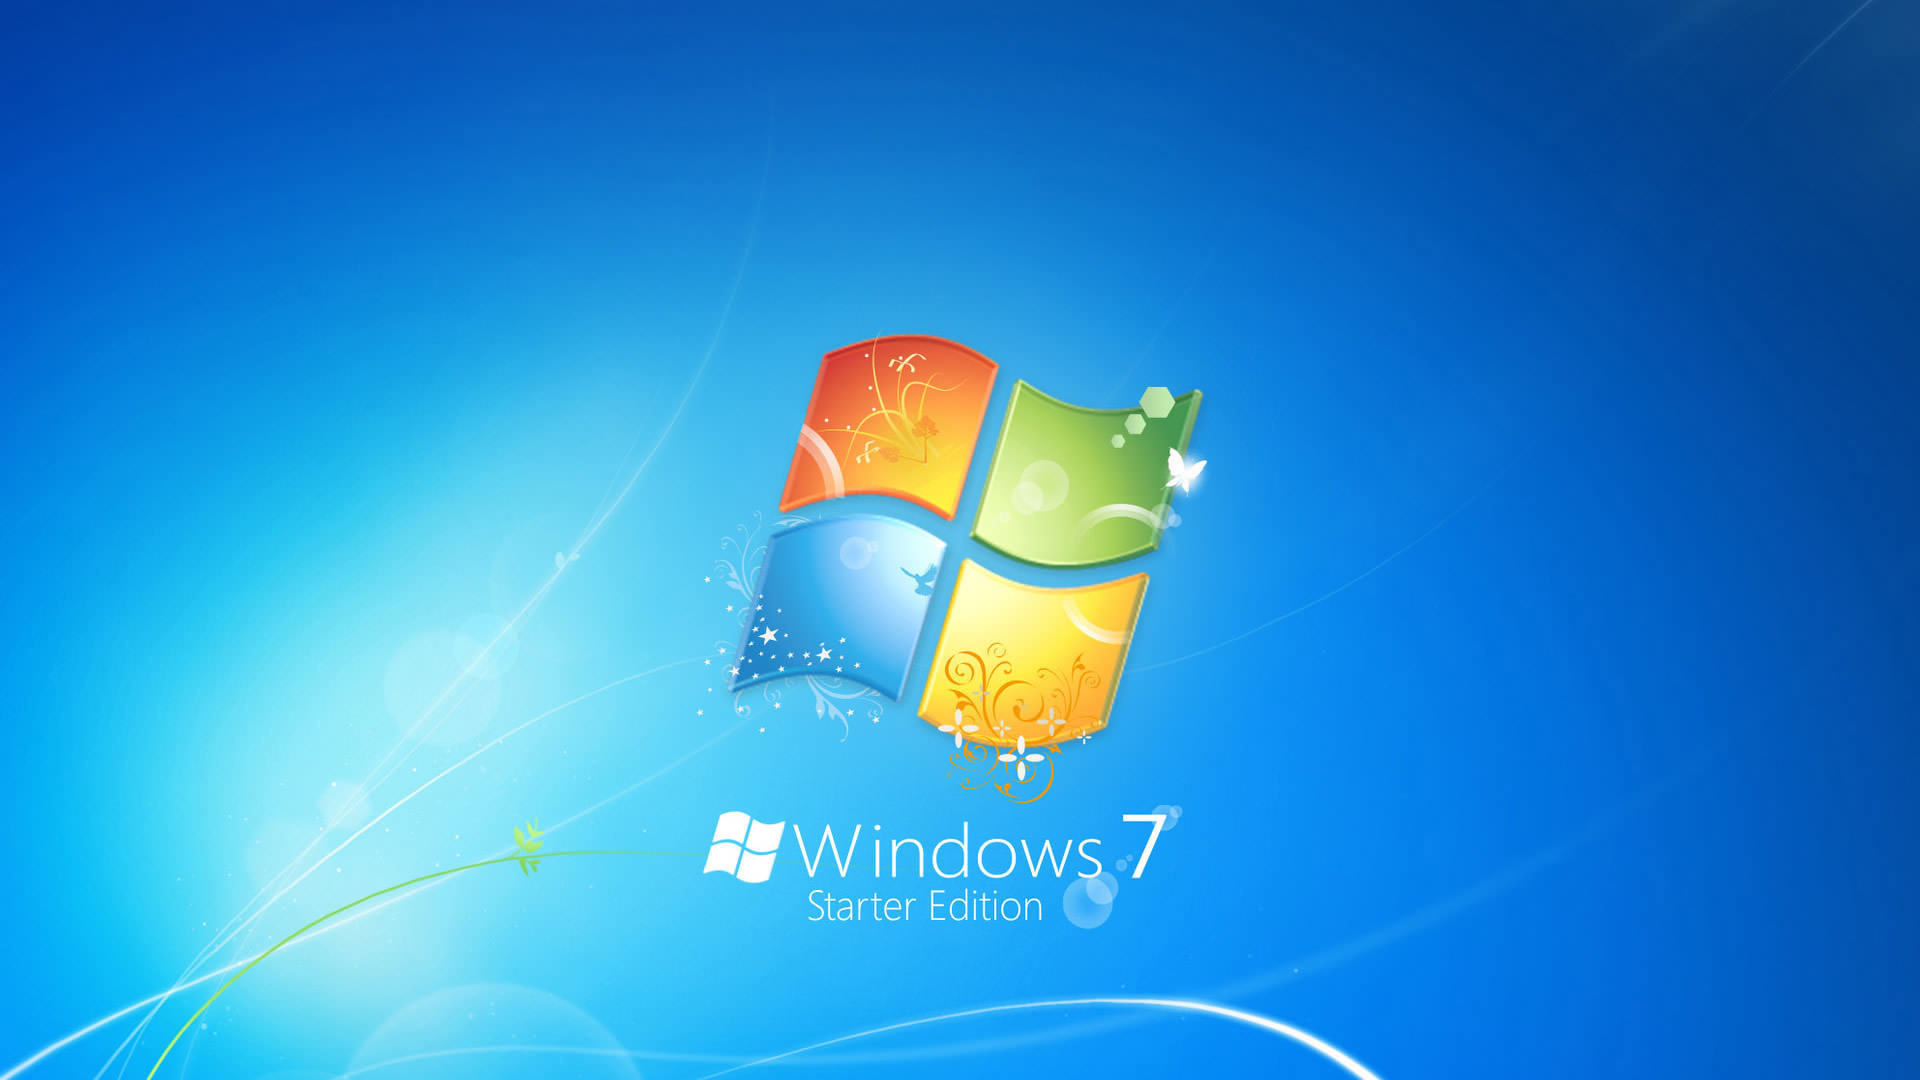 50] Windows 7 Background Desktop on WallpaperSafari 1920x1080